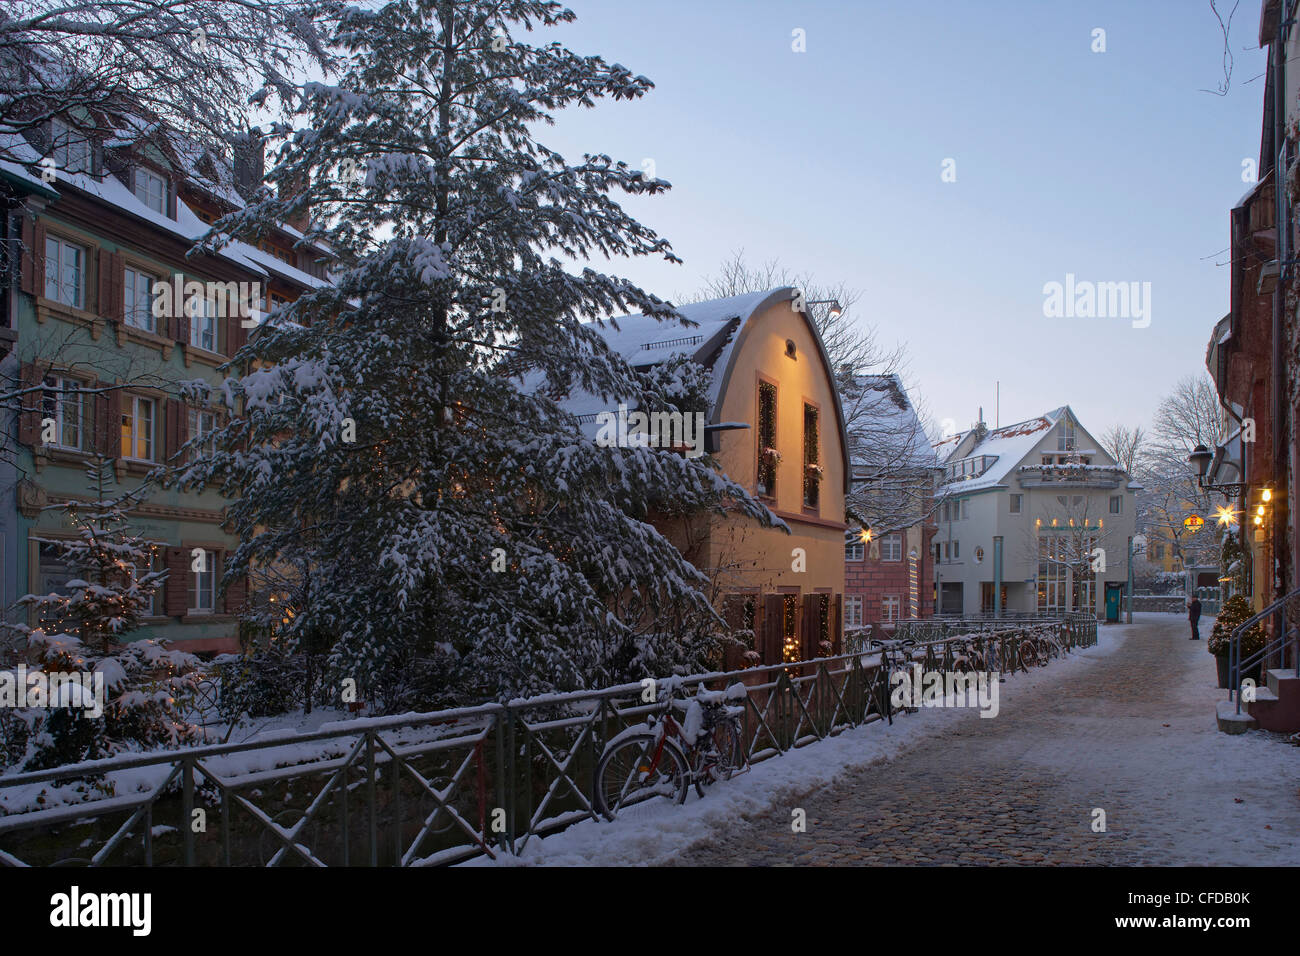 Fischerau and Olmuhle on the Insel, Freiburg, Evening, Snow, Black Forest, Baden Wuerttemberg, Germany, Europe - Stock Image